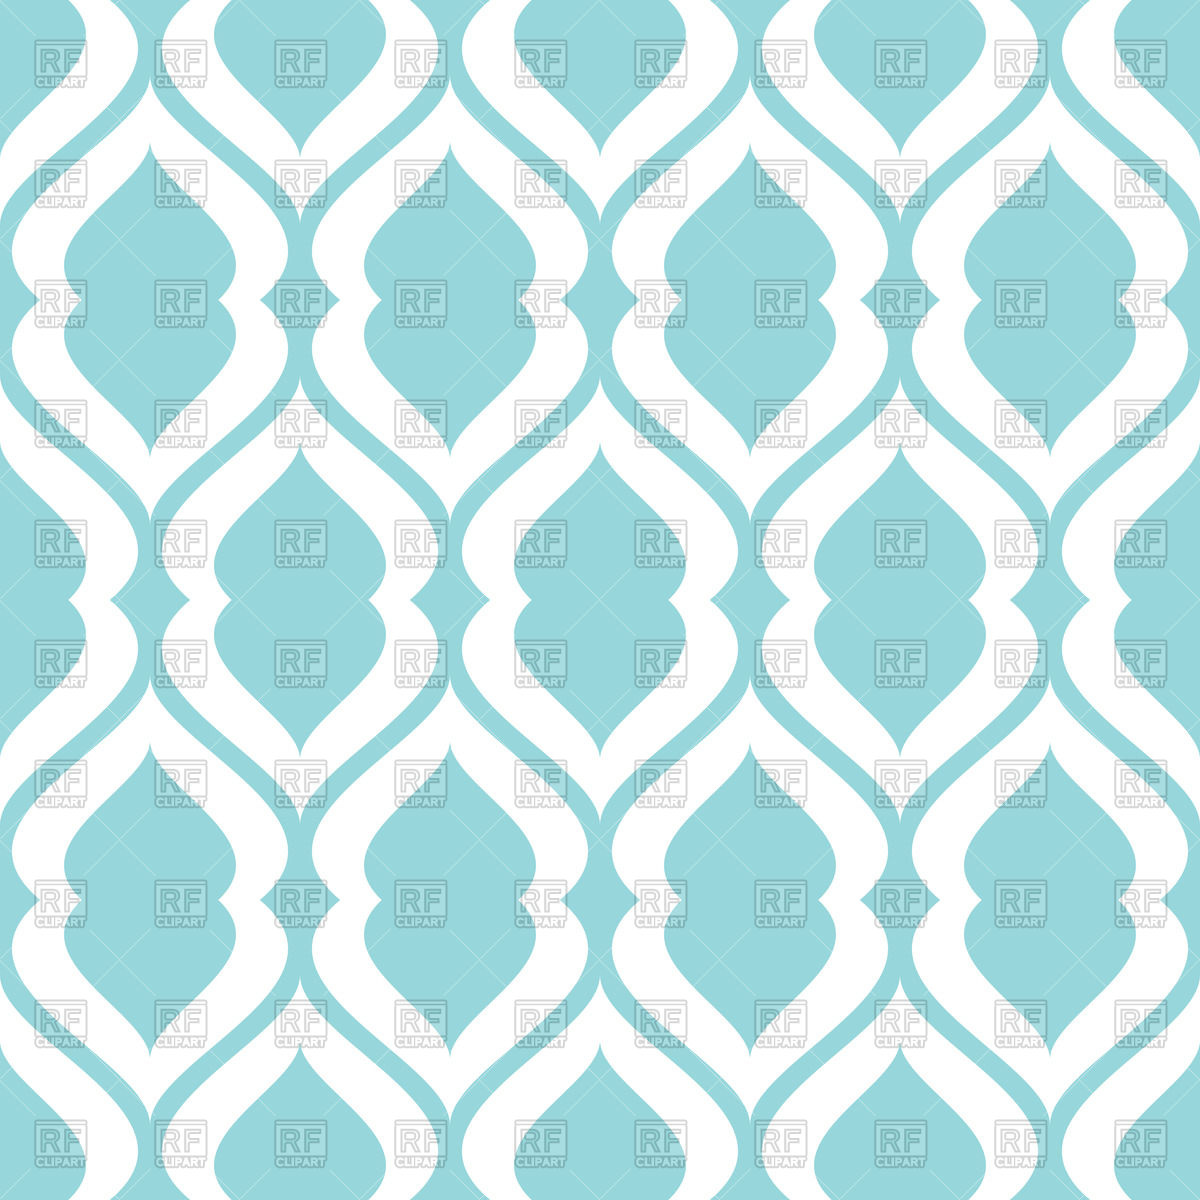 Simple geometric pattern for classic wallpaper download royalty free 1200x1200